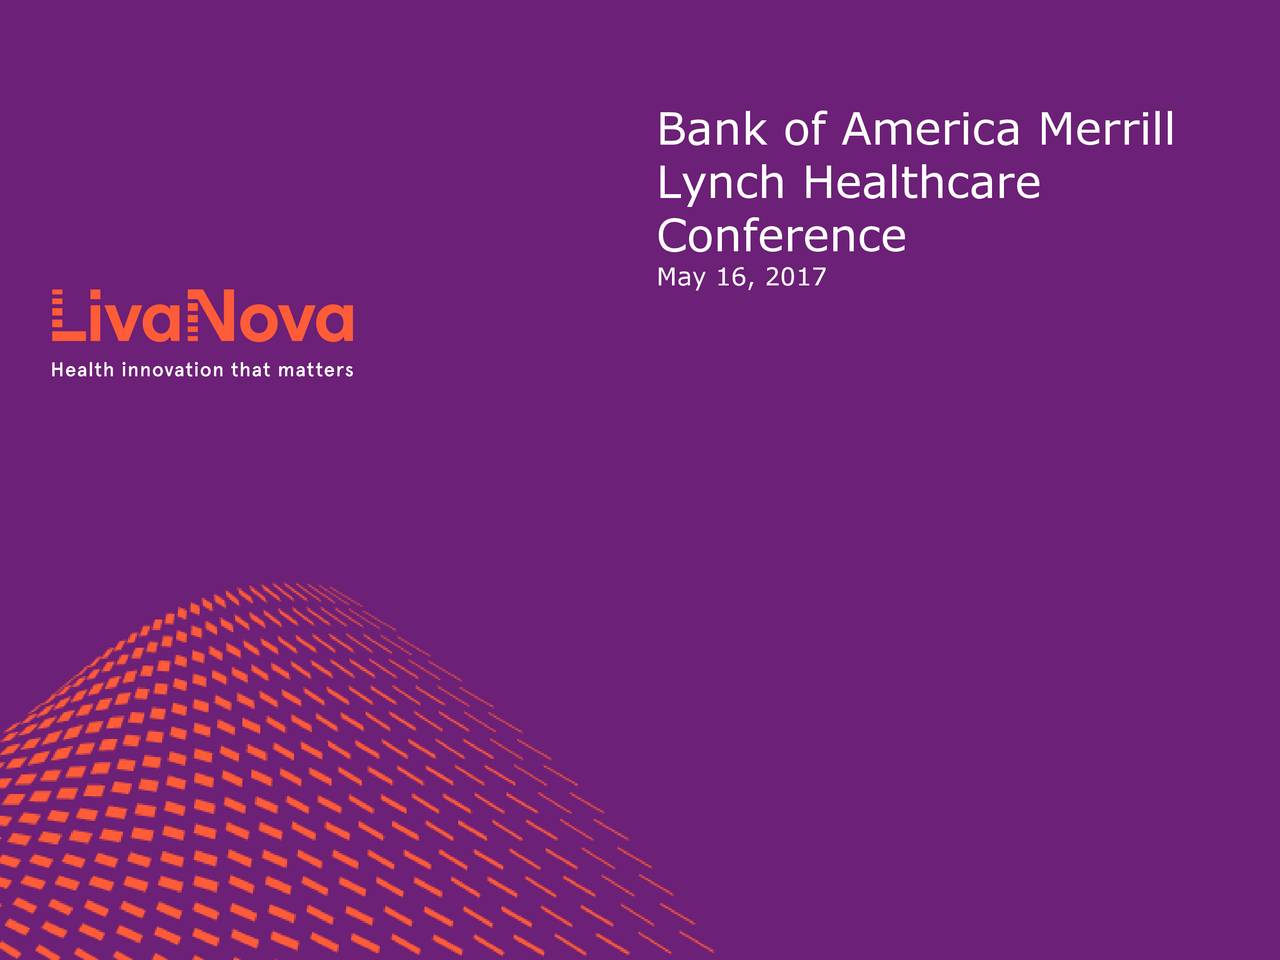 Lynch Healthcare May 16, 2017